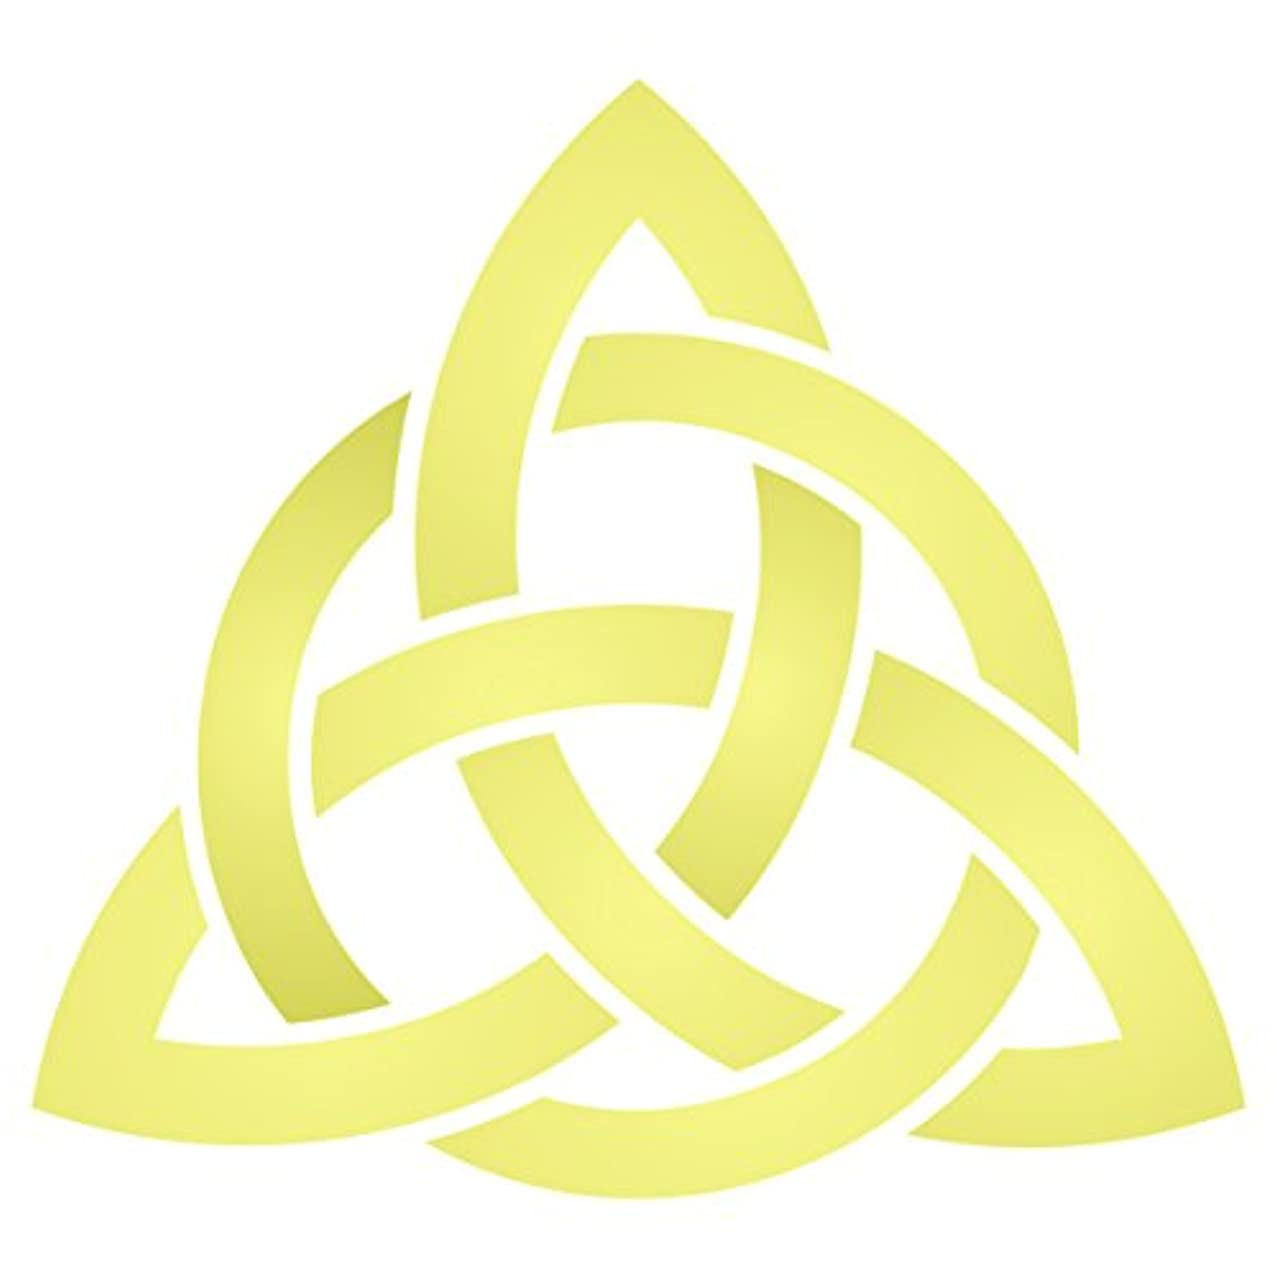 Celtic Trinity Knot Stencil - 6.5 x 6 inch (L) - Reusable Geometric Knotwork Sacred Symbol Stencil Template - Use on Paper Projects Scrapbook Journal Walls Floors Fabric Furniture Glass Wood etc.